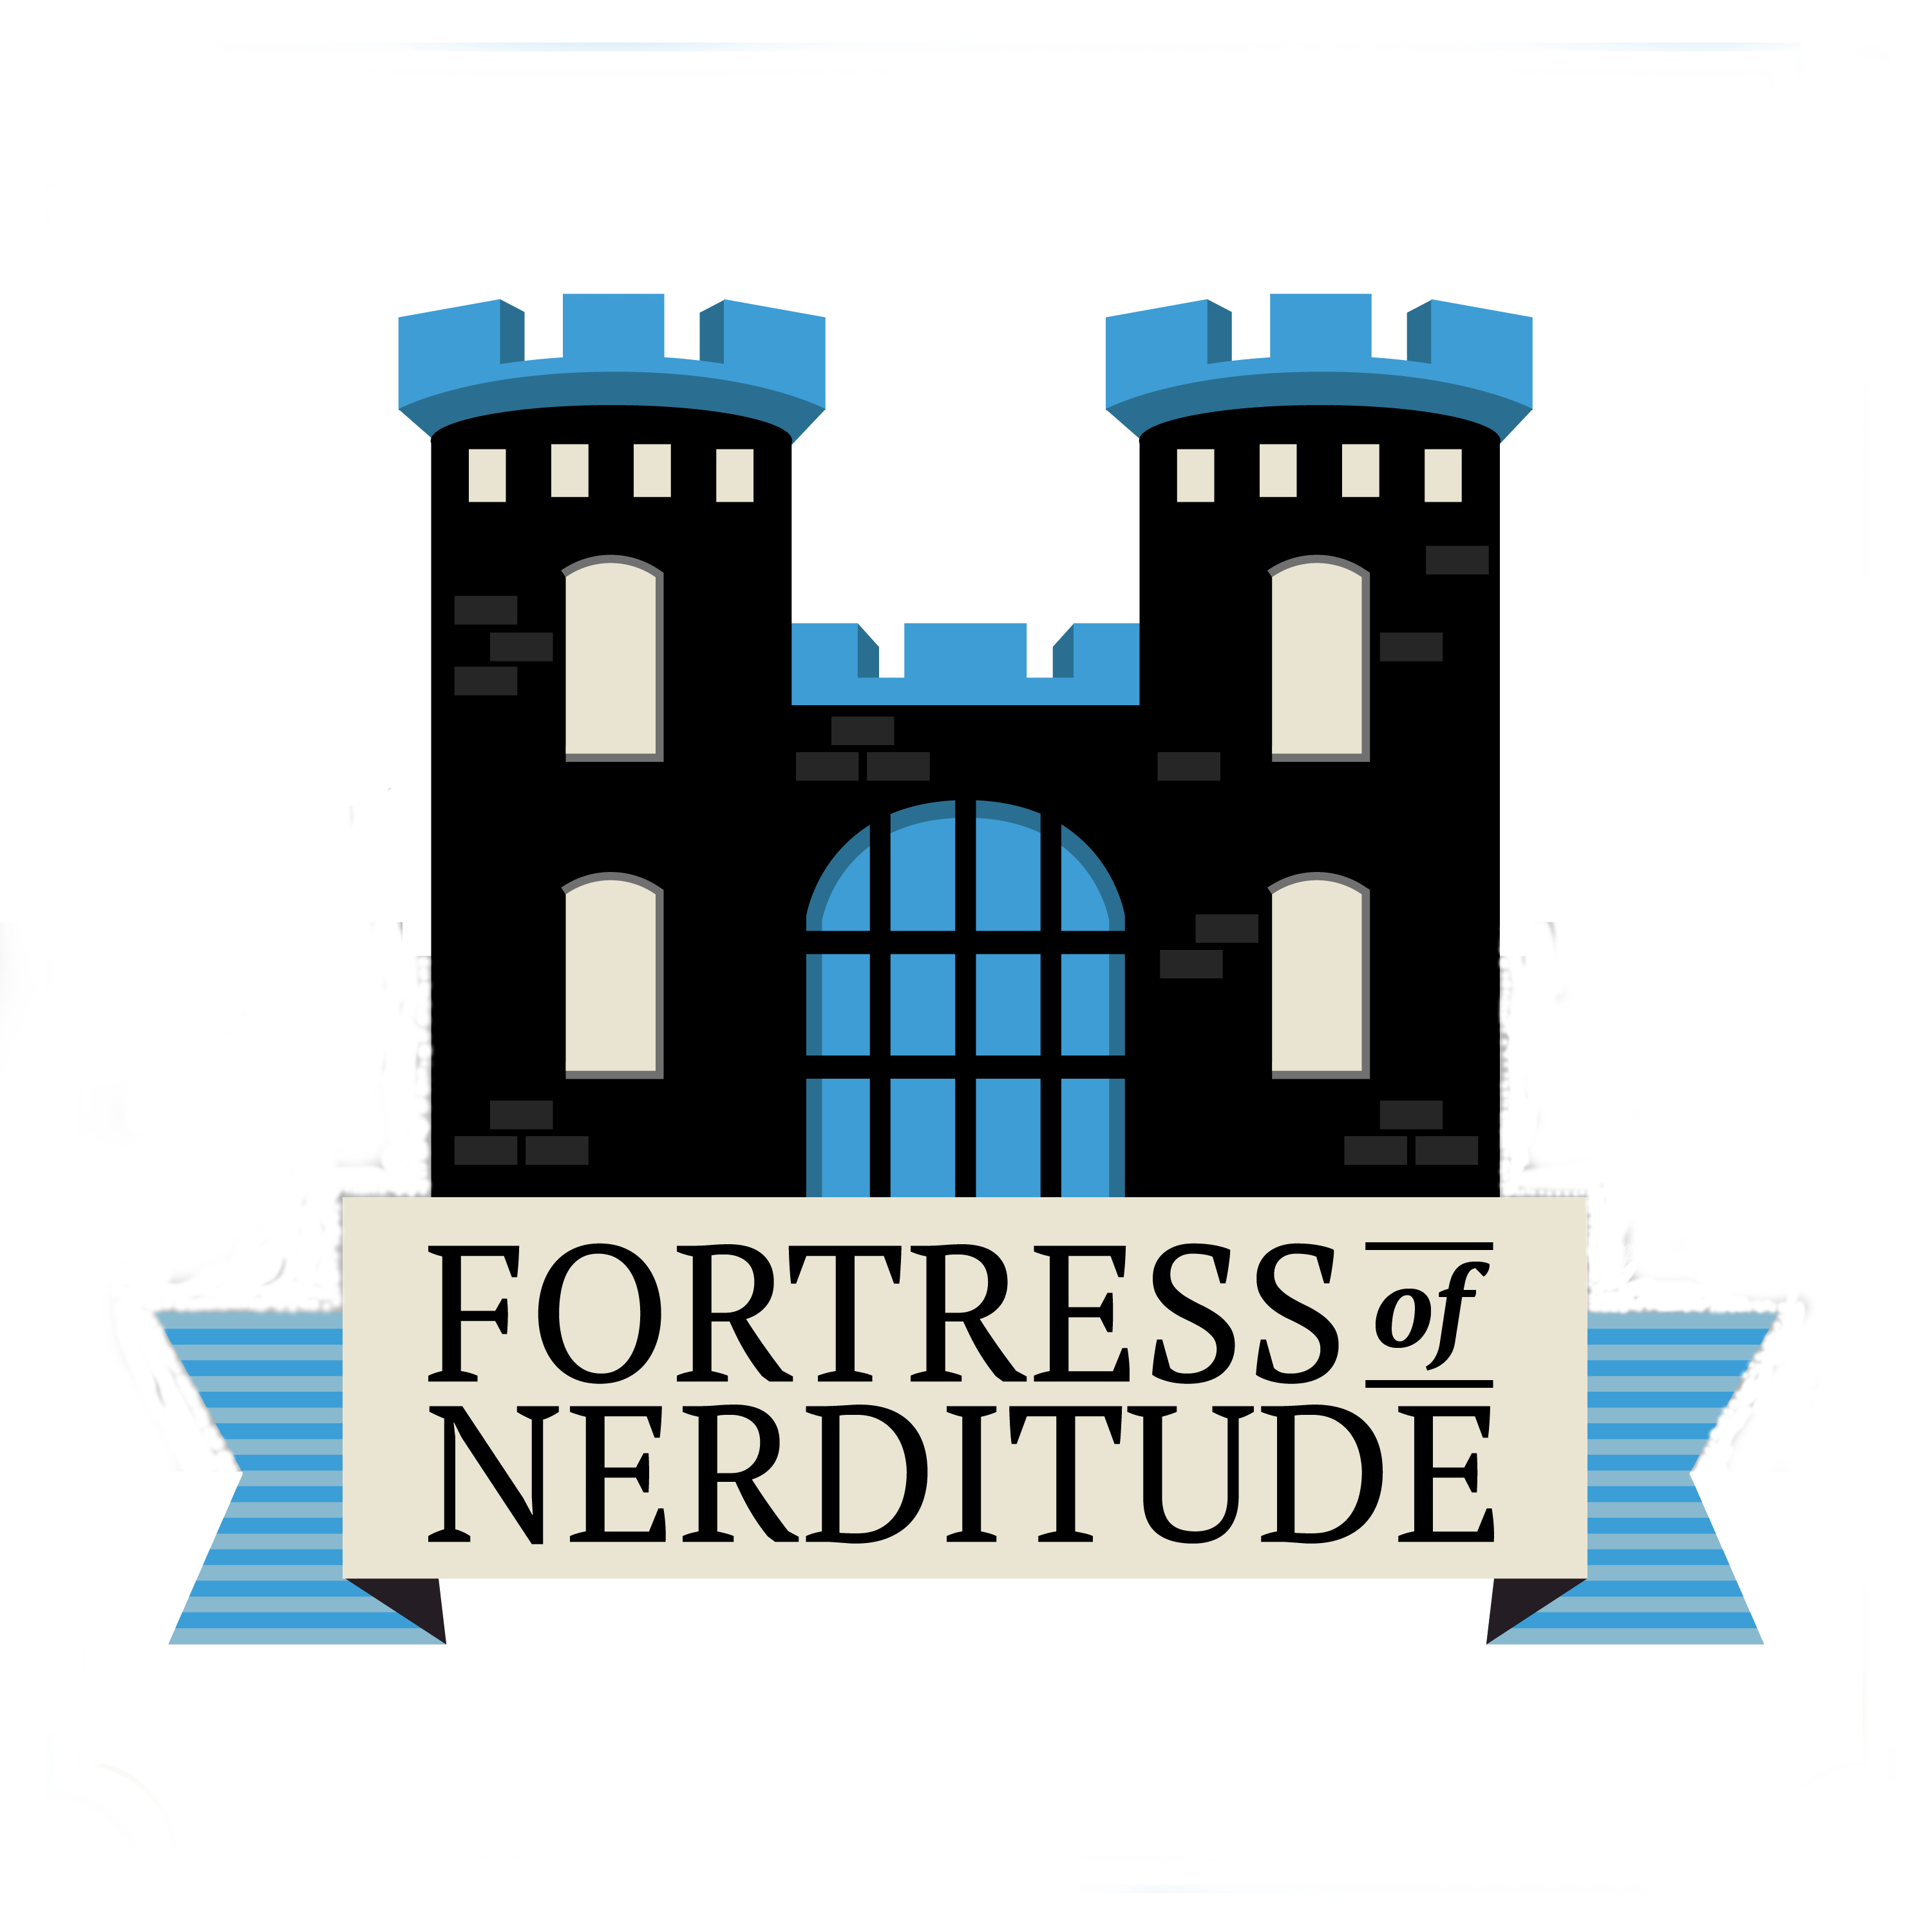 Fortress of Nerditude